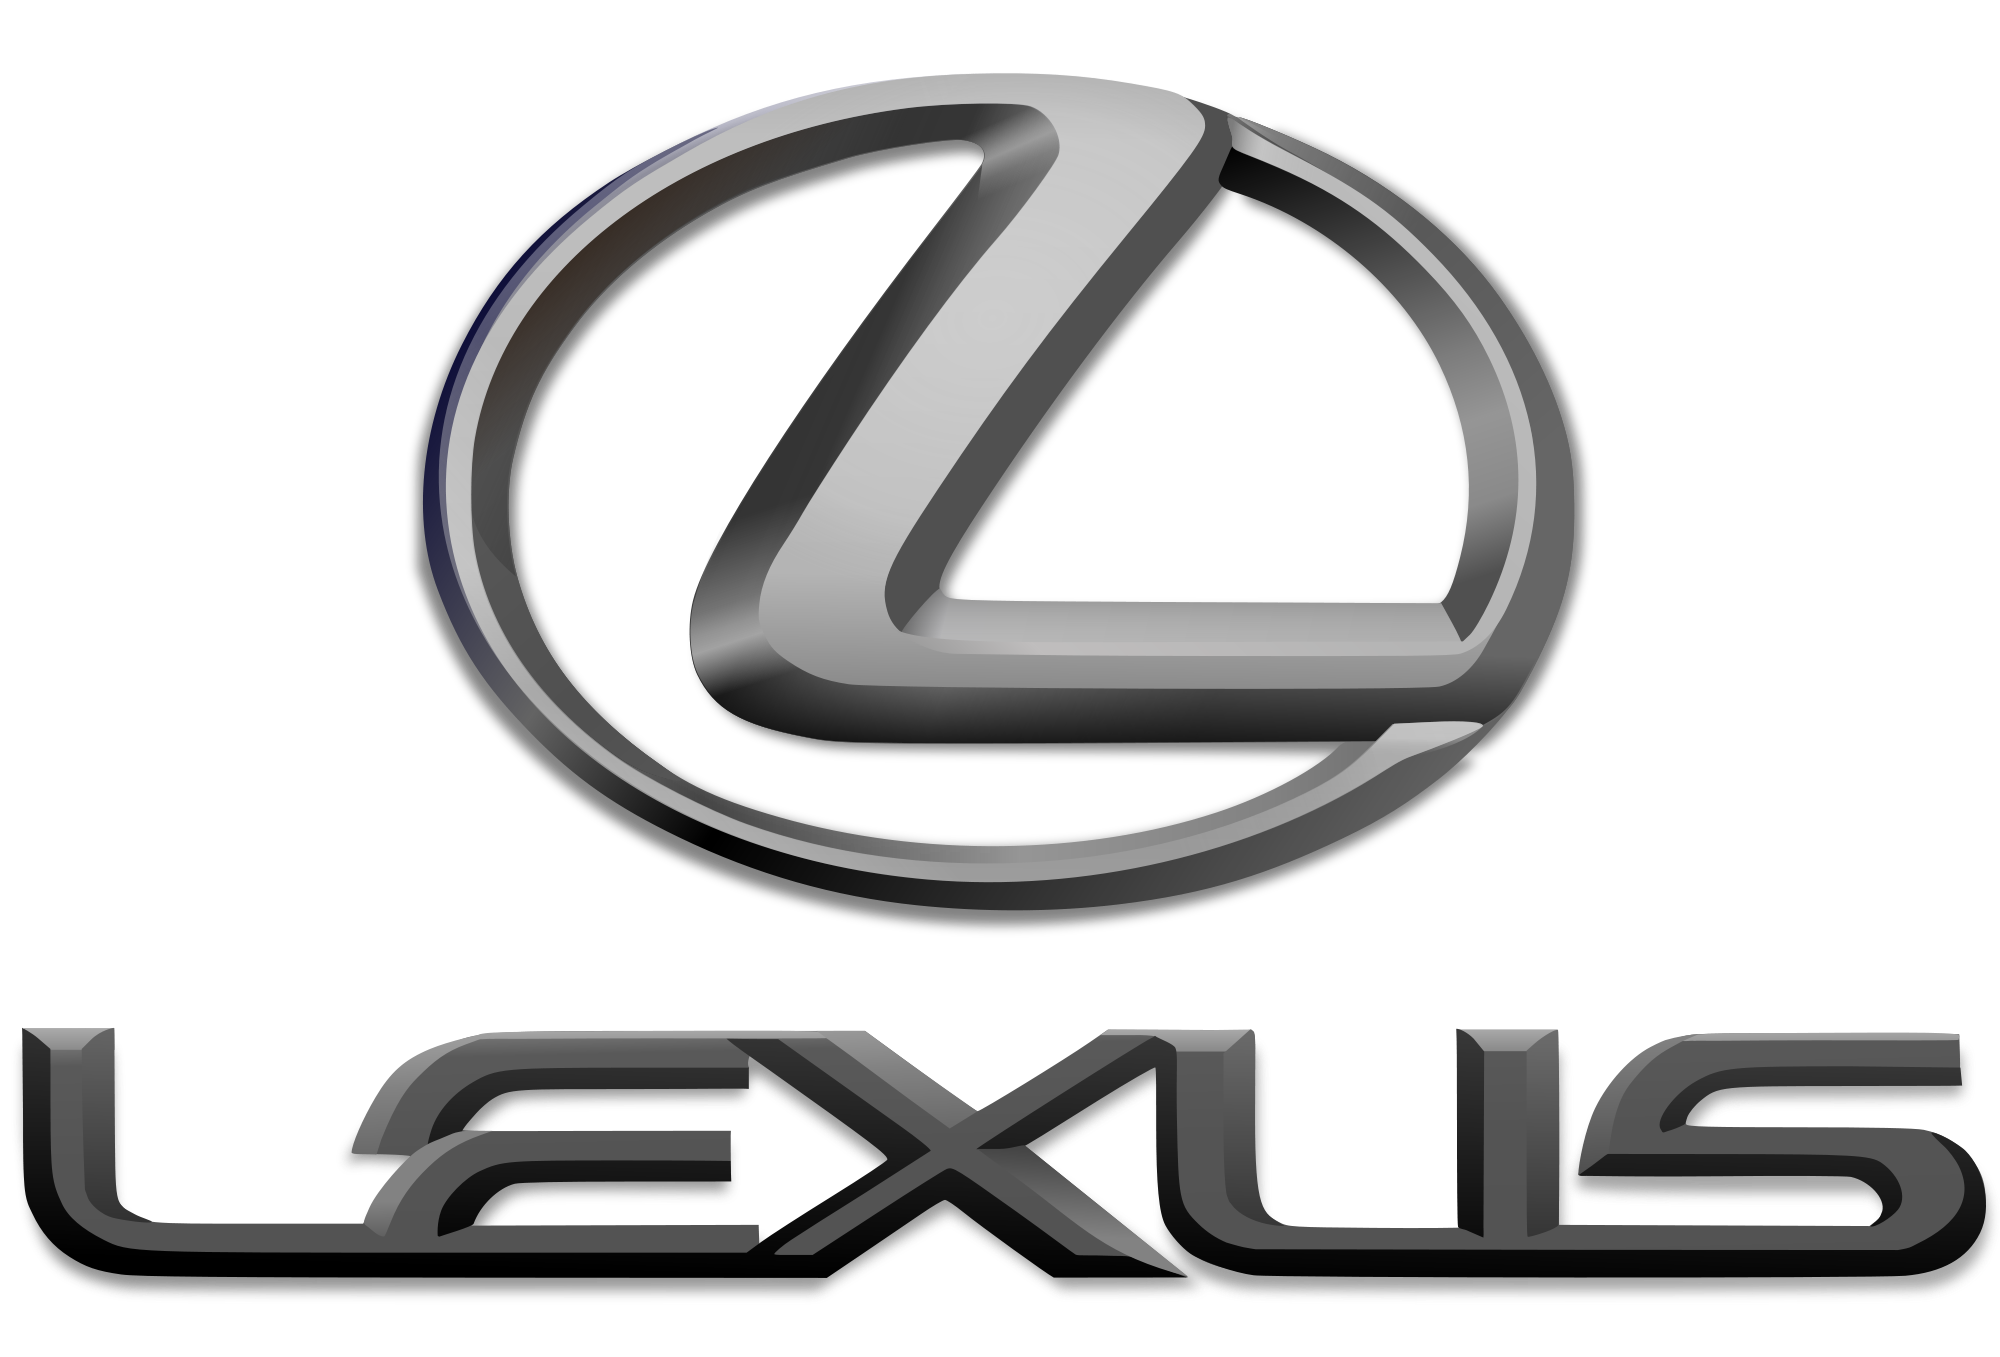 Lexus logo lexus car symbol meaning and history car brand names lexus logo biocorpaavc